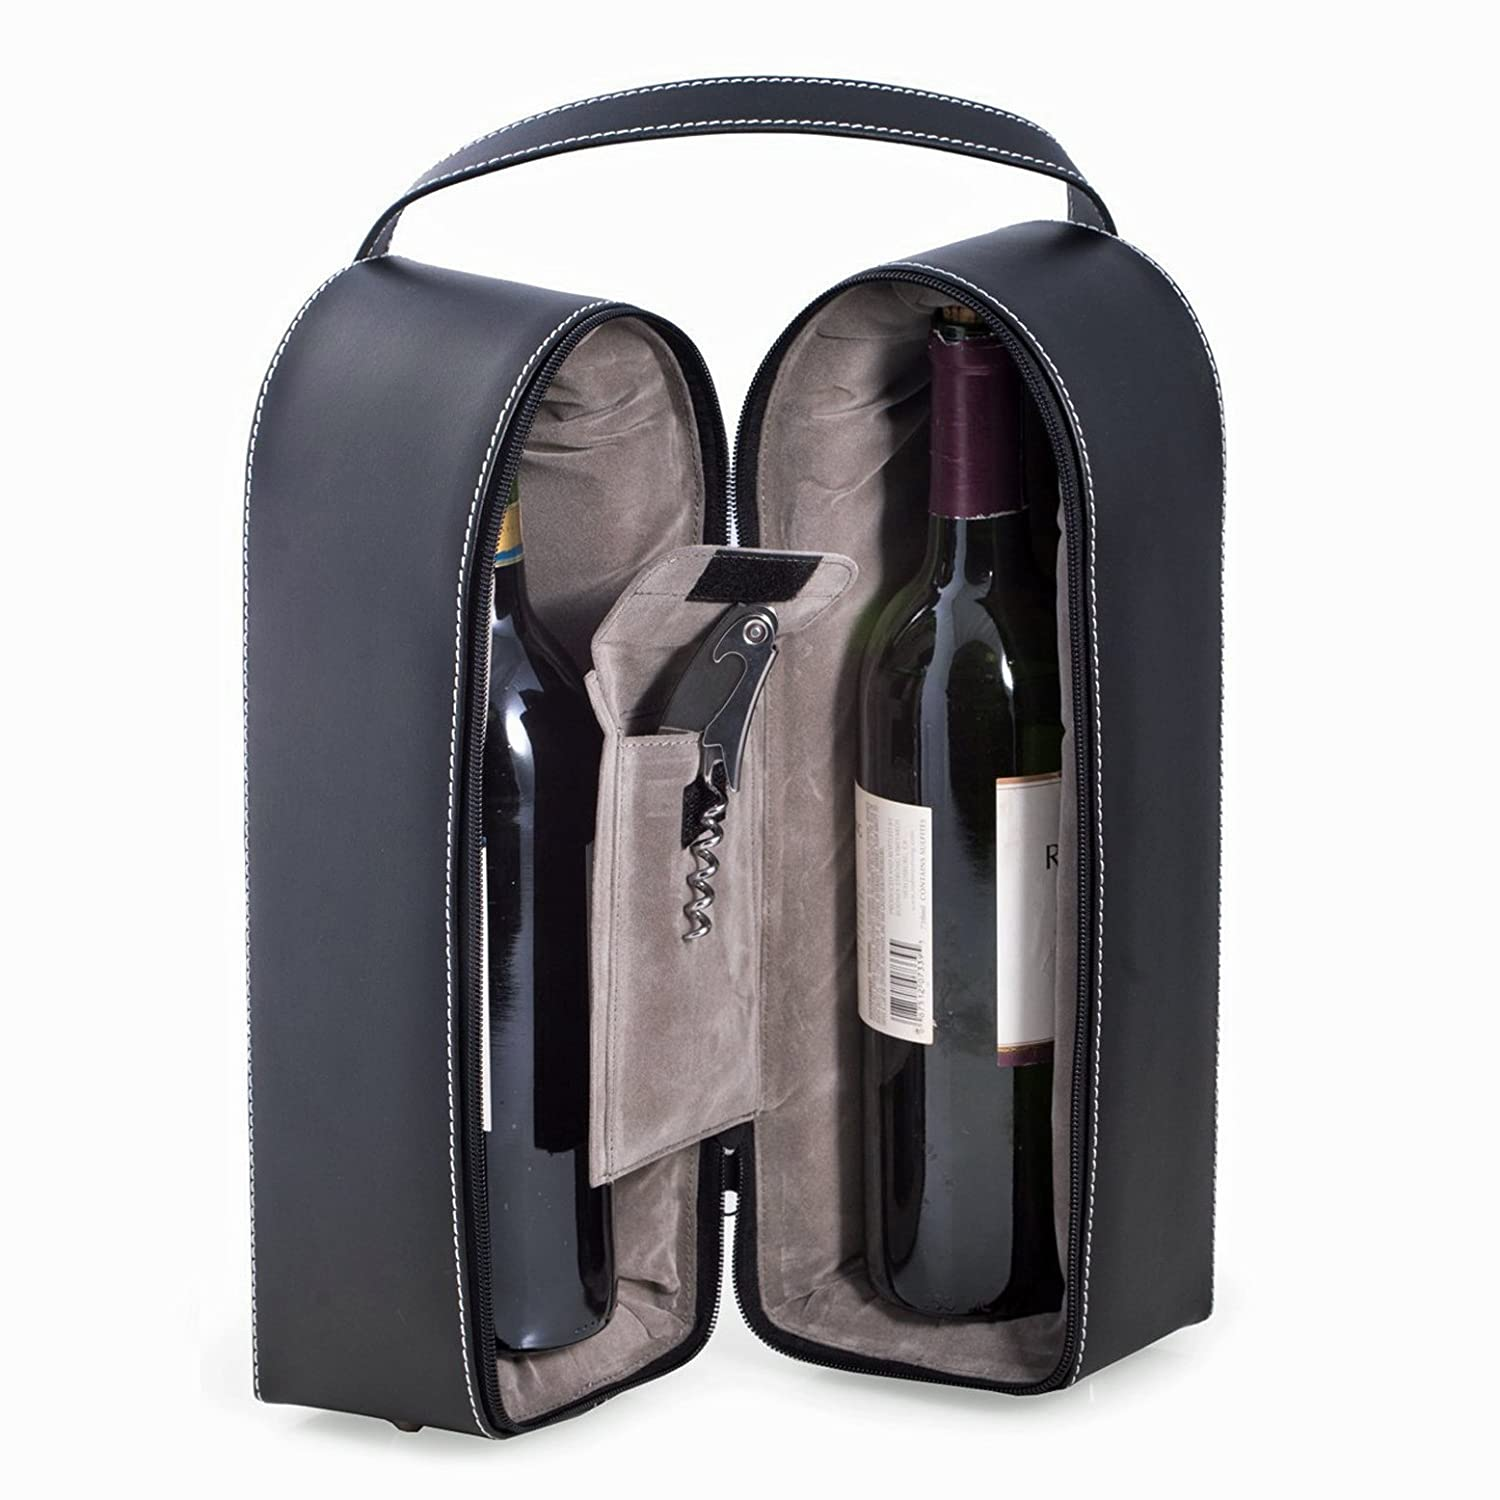 Wine Carrier - Dual Wine Caddy with Bar Tool - Black Leather - Wine Holder Kensington Row Collection KRC-XBS^BRK^936-WNHLD